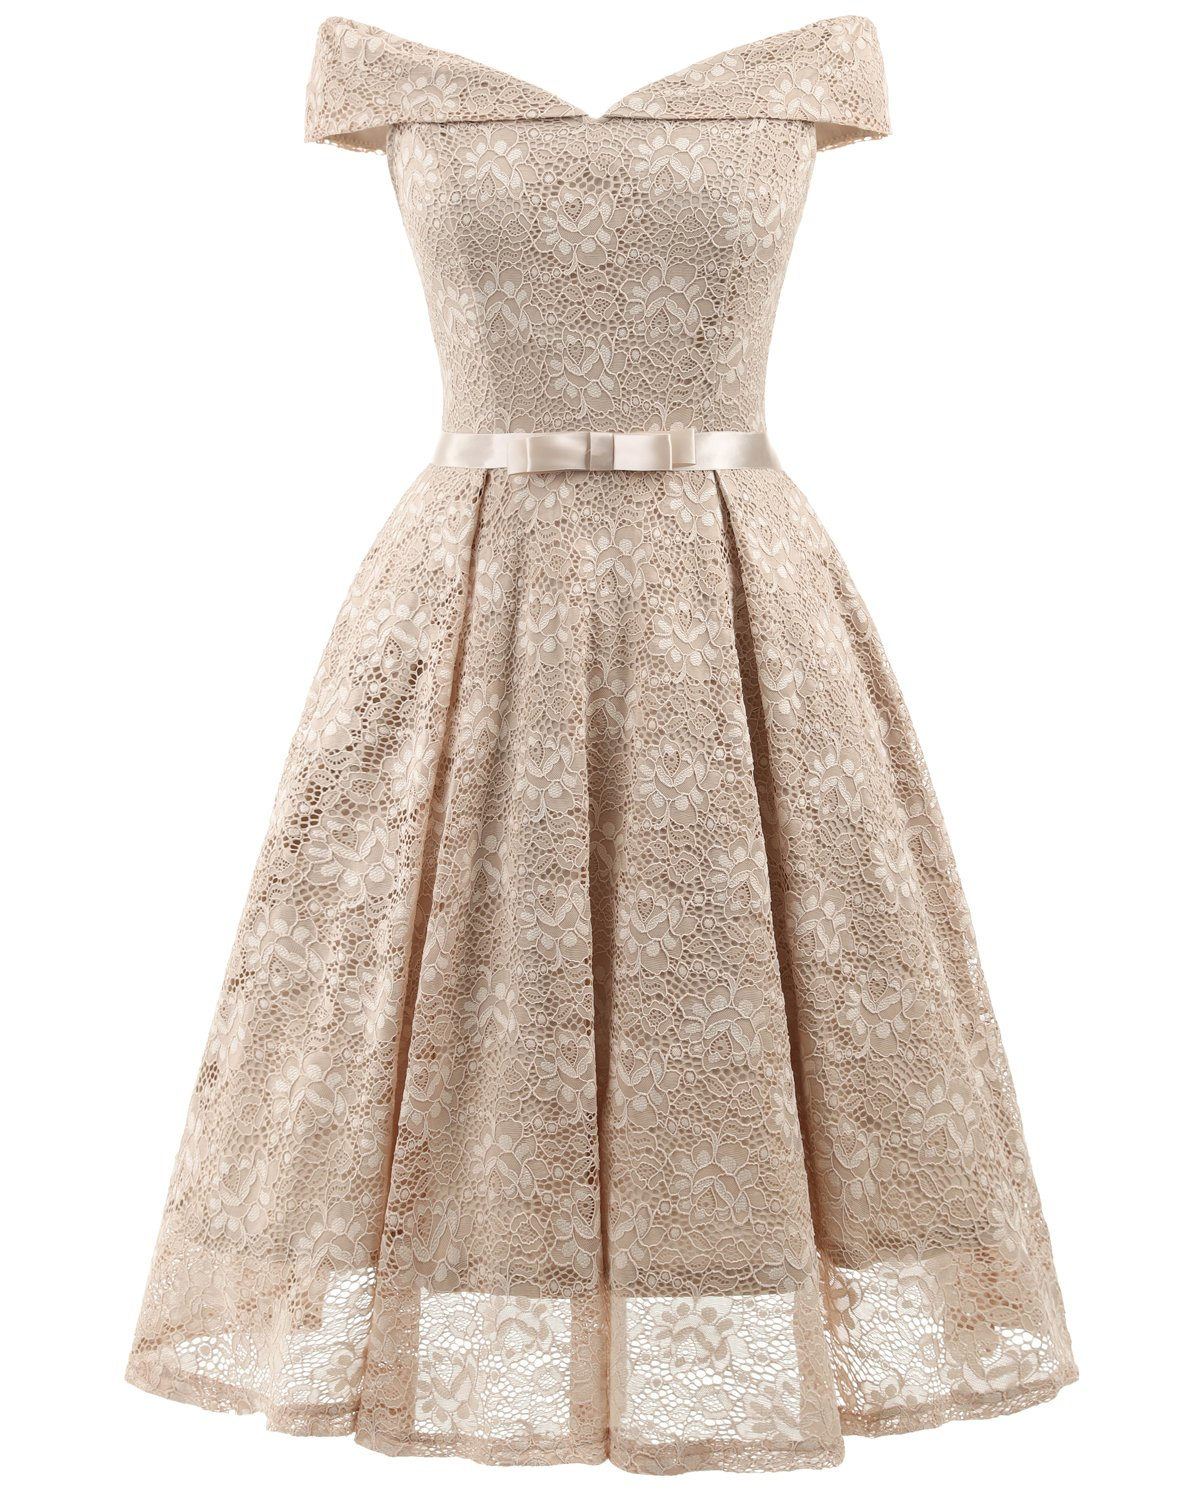 8001e56f4e8 ... Friday REMASIKO Womens Lace Bridesmaid V Neck Formal Wedding Party  Cocktail Midi Dress Beige XX-Large.   